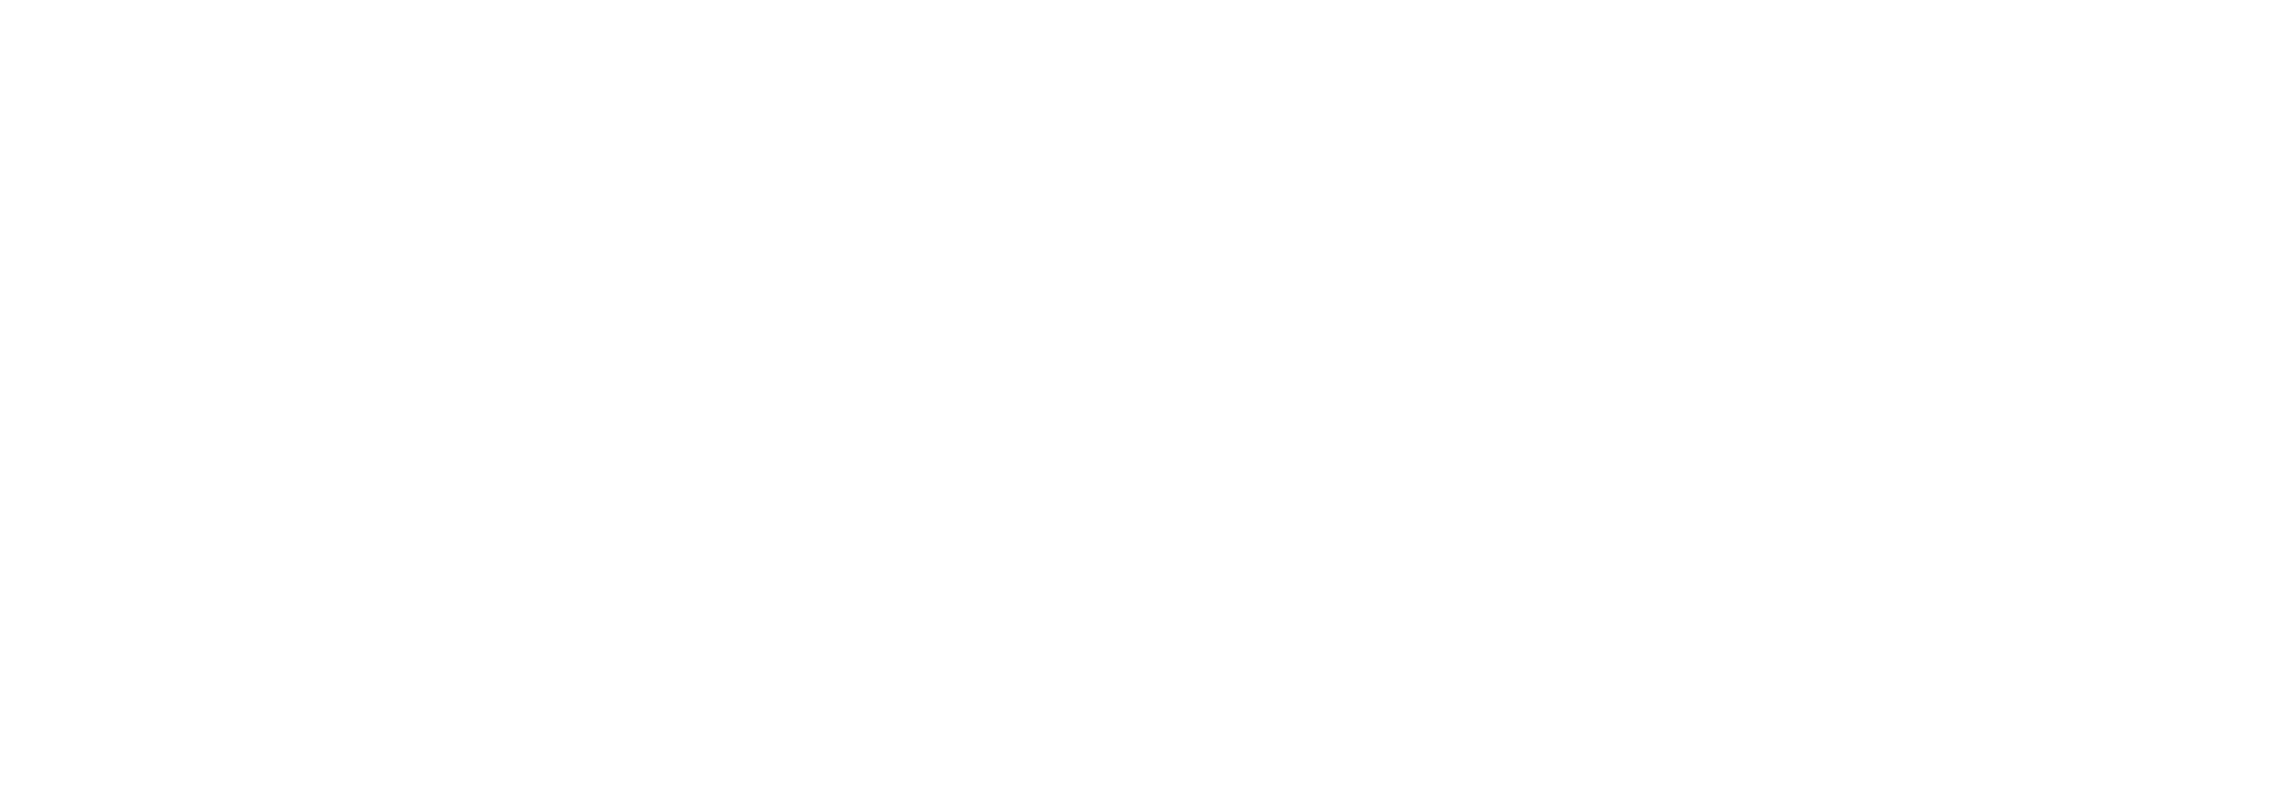 MGMの理念 PHILOSOPHY OF MGM